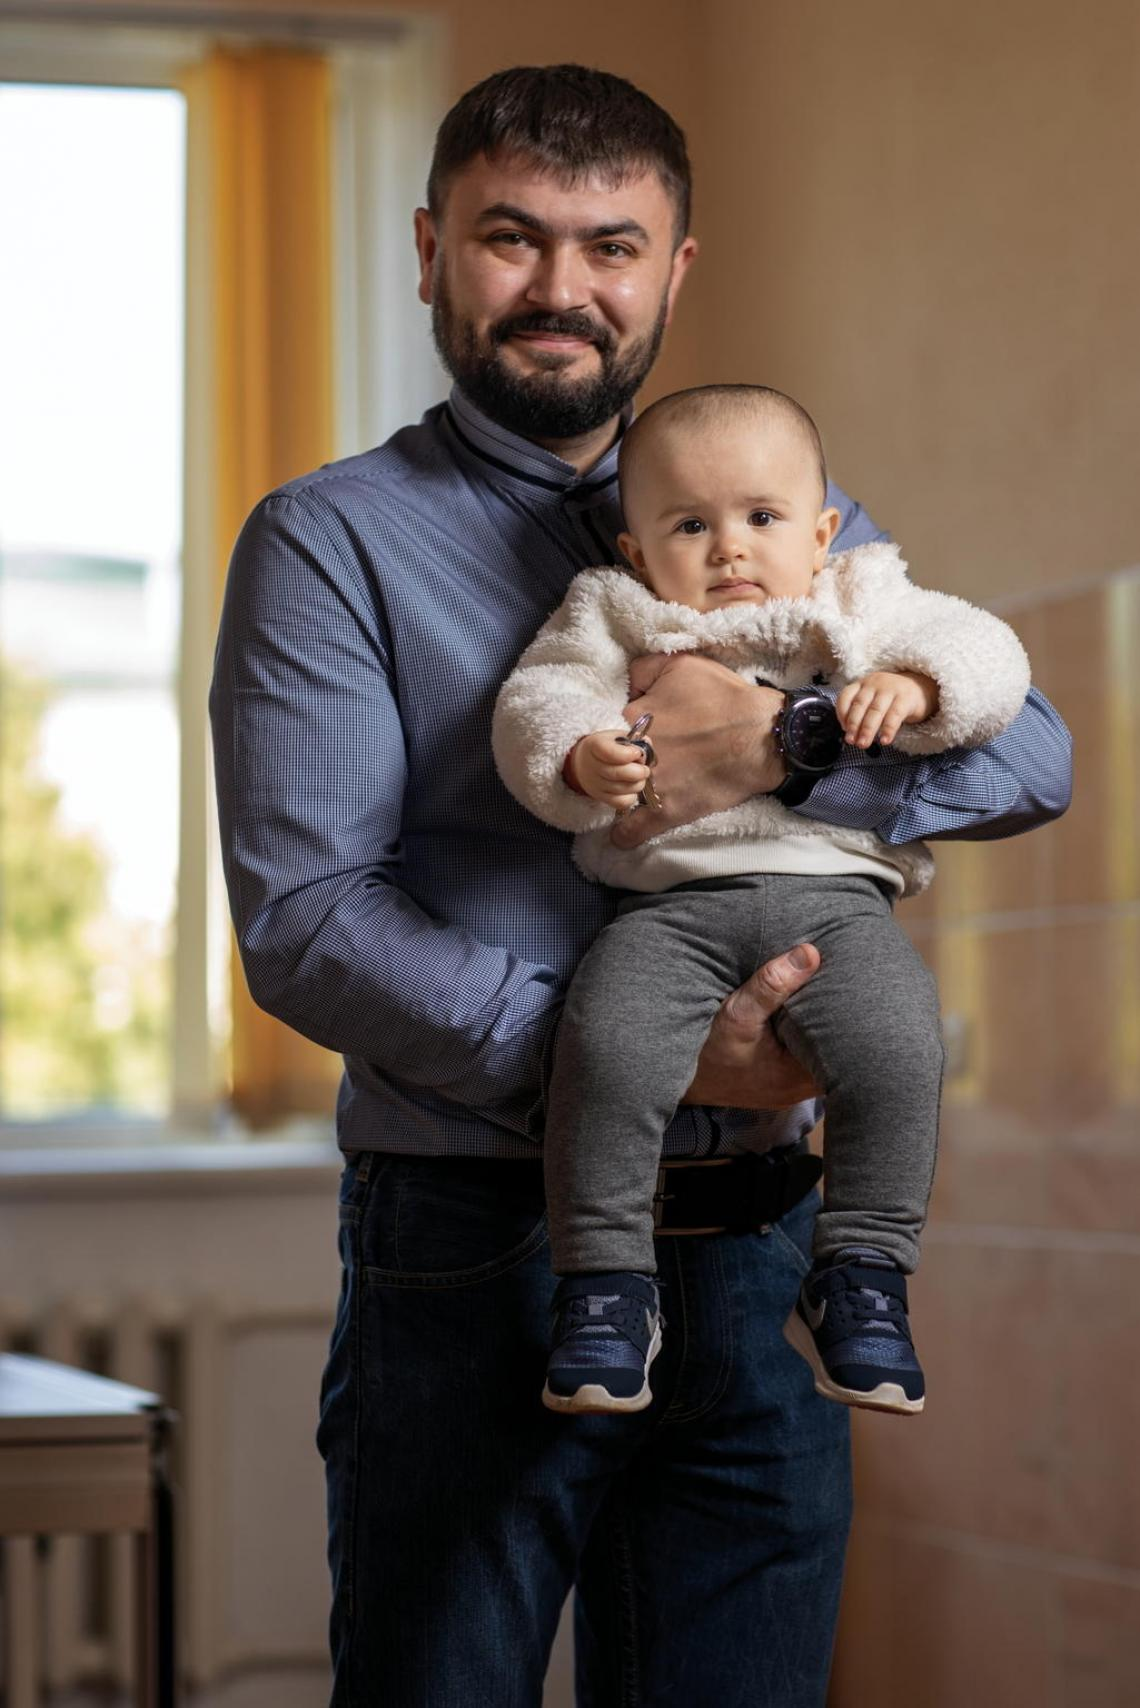 Serhiy Oliynyk, a paediatrician, holds his daughter Katya, age 1, before setting off to work at Kosiv hospital in Western Ukraine. Serhiy promotes vaccines among his patients and recently had Katya inoculated against measles. Children should generally receive their first dose of the MMR vaccine at age 1; babies at high risk of contracting measles, especially during an outbreak, can receive the MMR shot as early as 6 months.